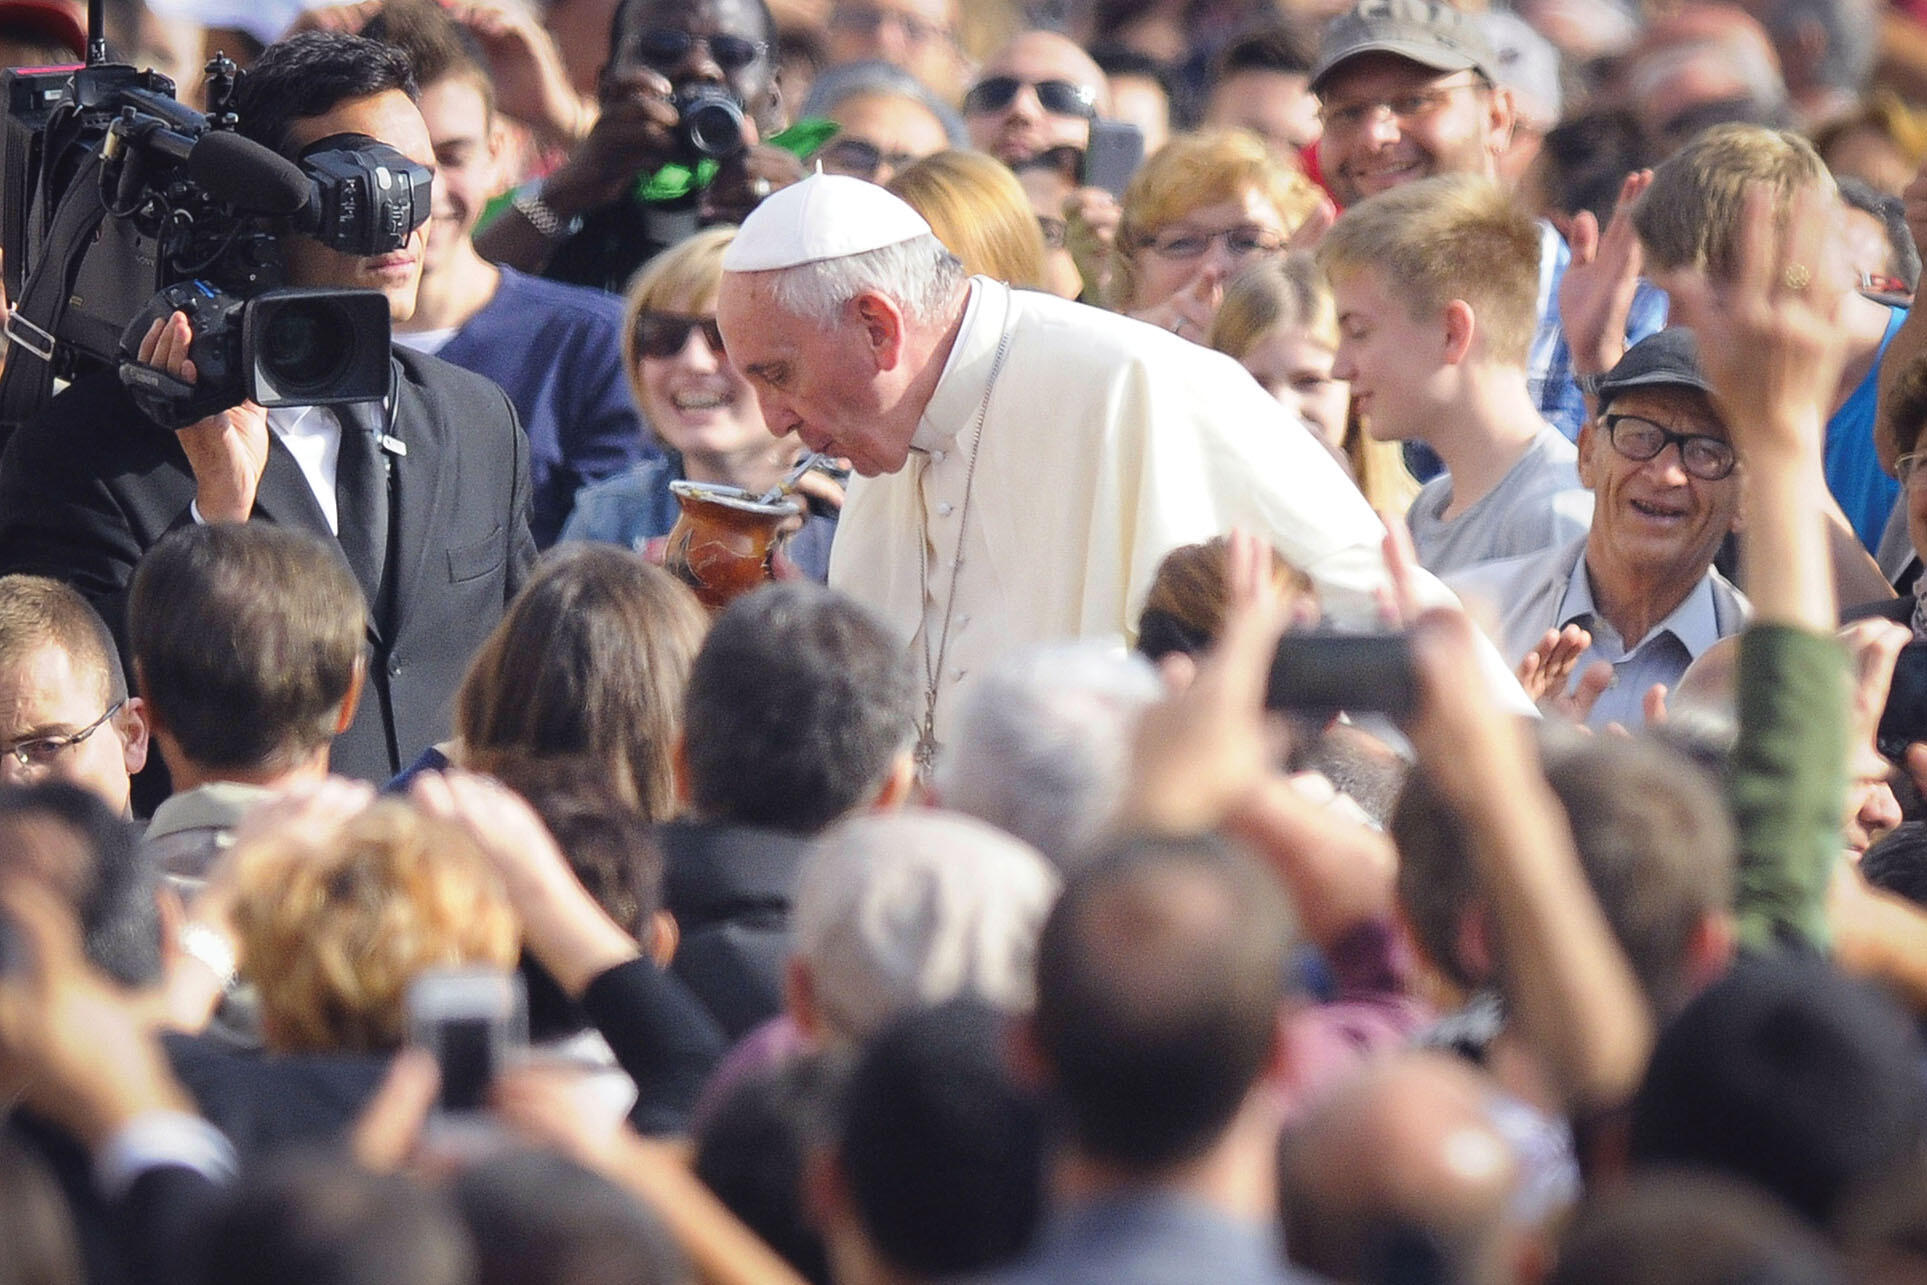 Pope Francis sips from a mug of mate offered by a pilgrim in St. Peter's Square. (Photo from Associated Press.)